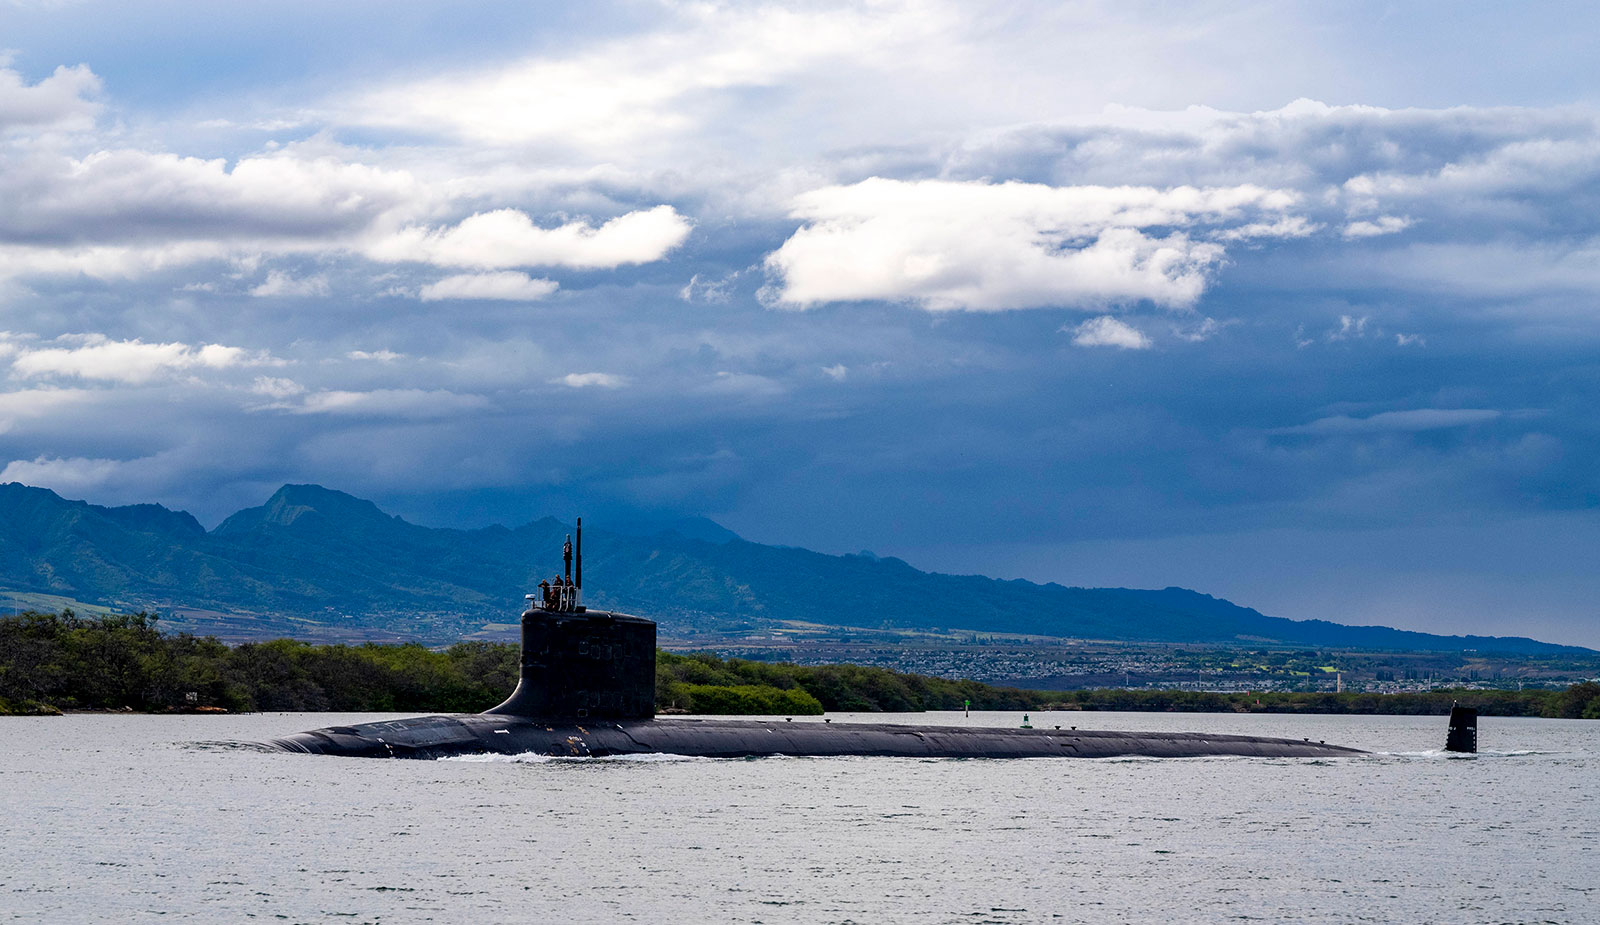 The USS Missouri, one of the US Navy's nuclear-powered submarines, departs Joint Base Pearl Harbor-Hickam on September 1. Last week the US and UK announced they will help Australia acquire nuclear-powered submarines as part of a new security pact called AUKUS.